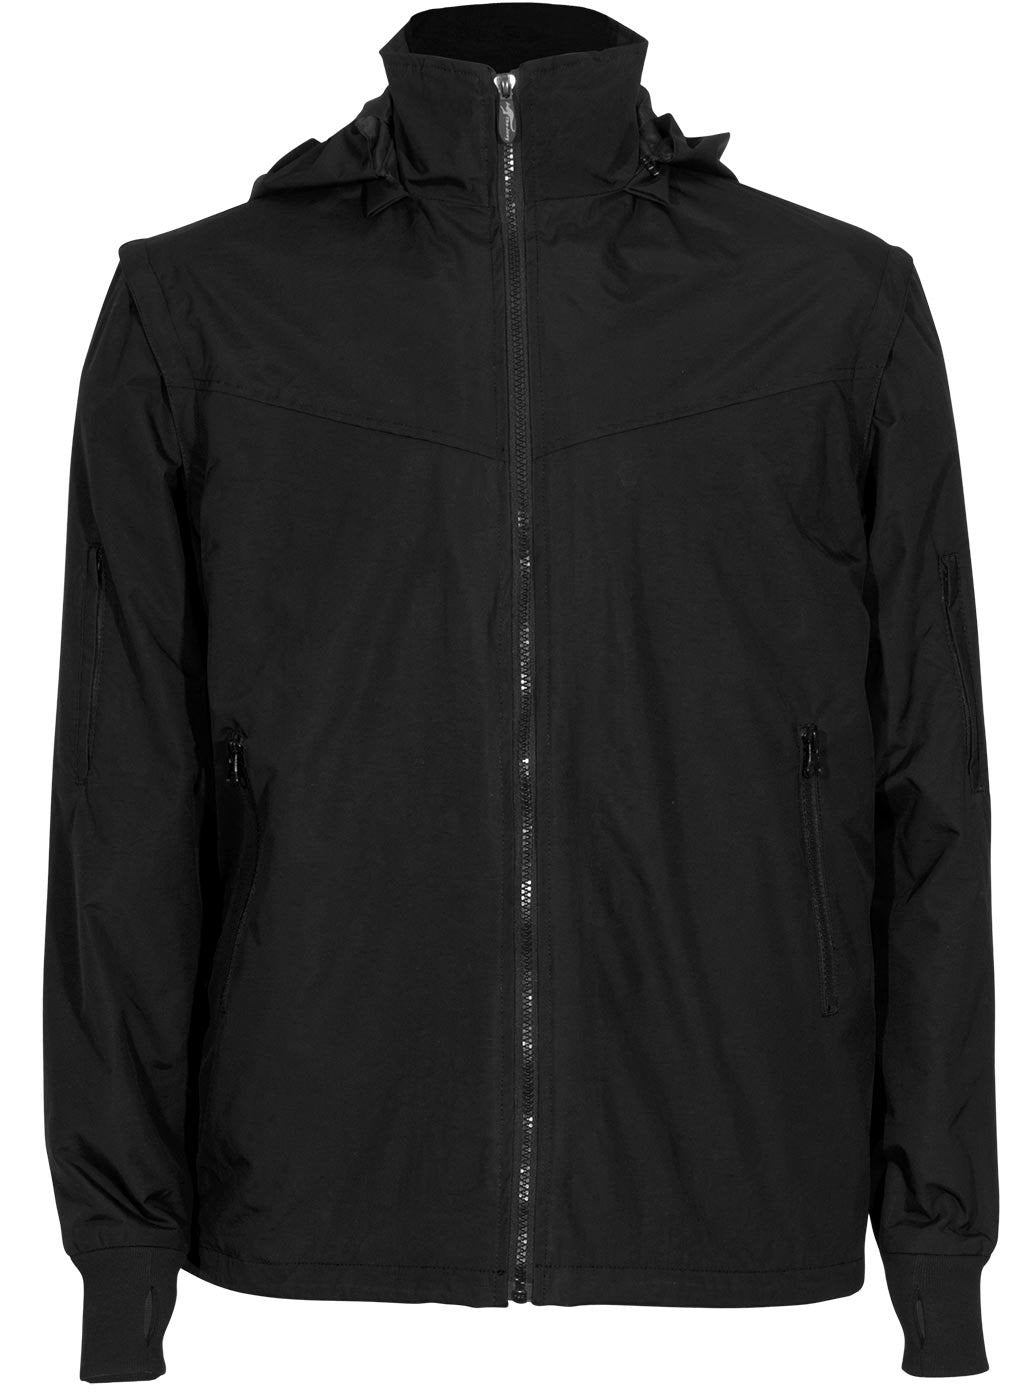 Joey black soft shell travel jacket